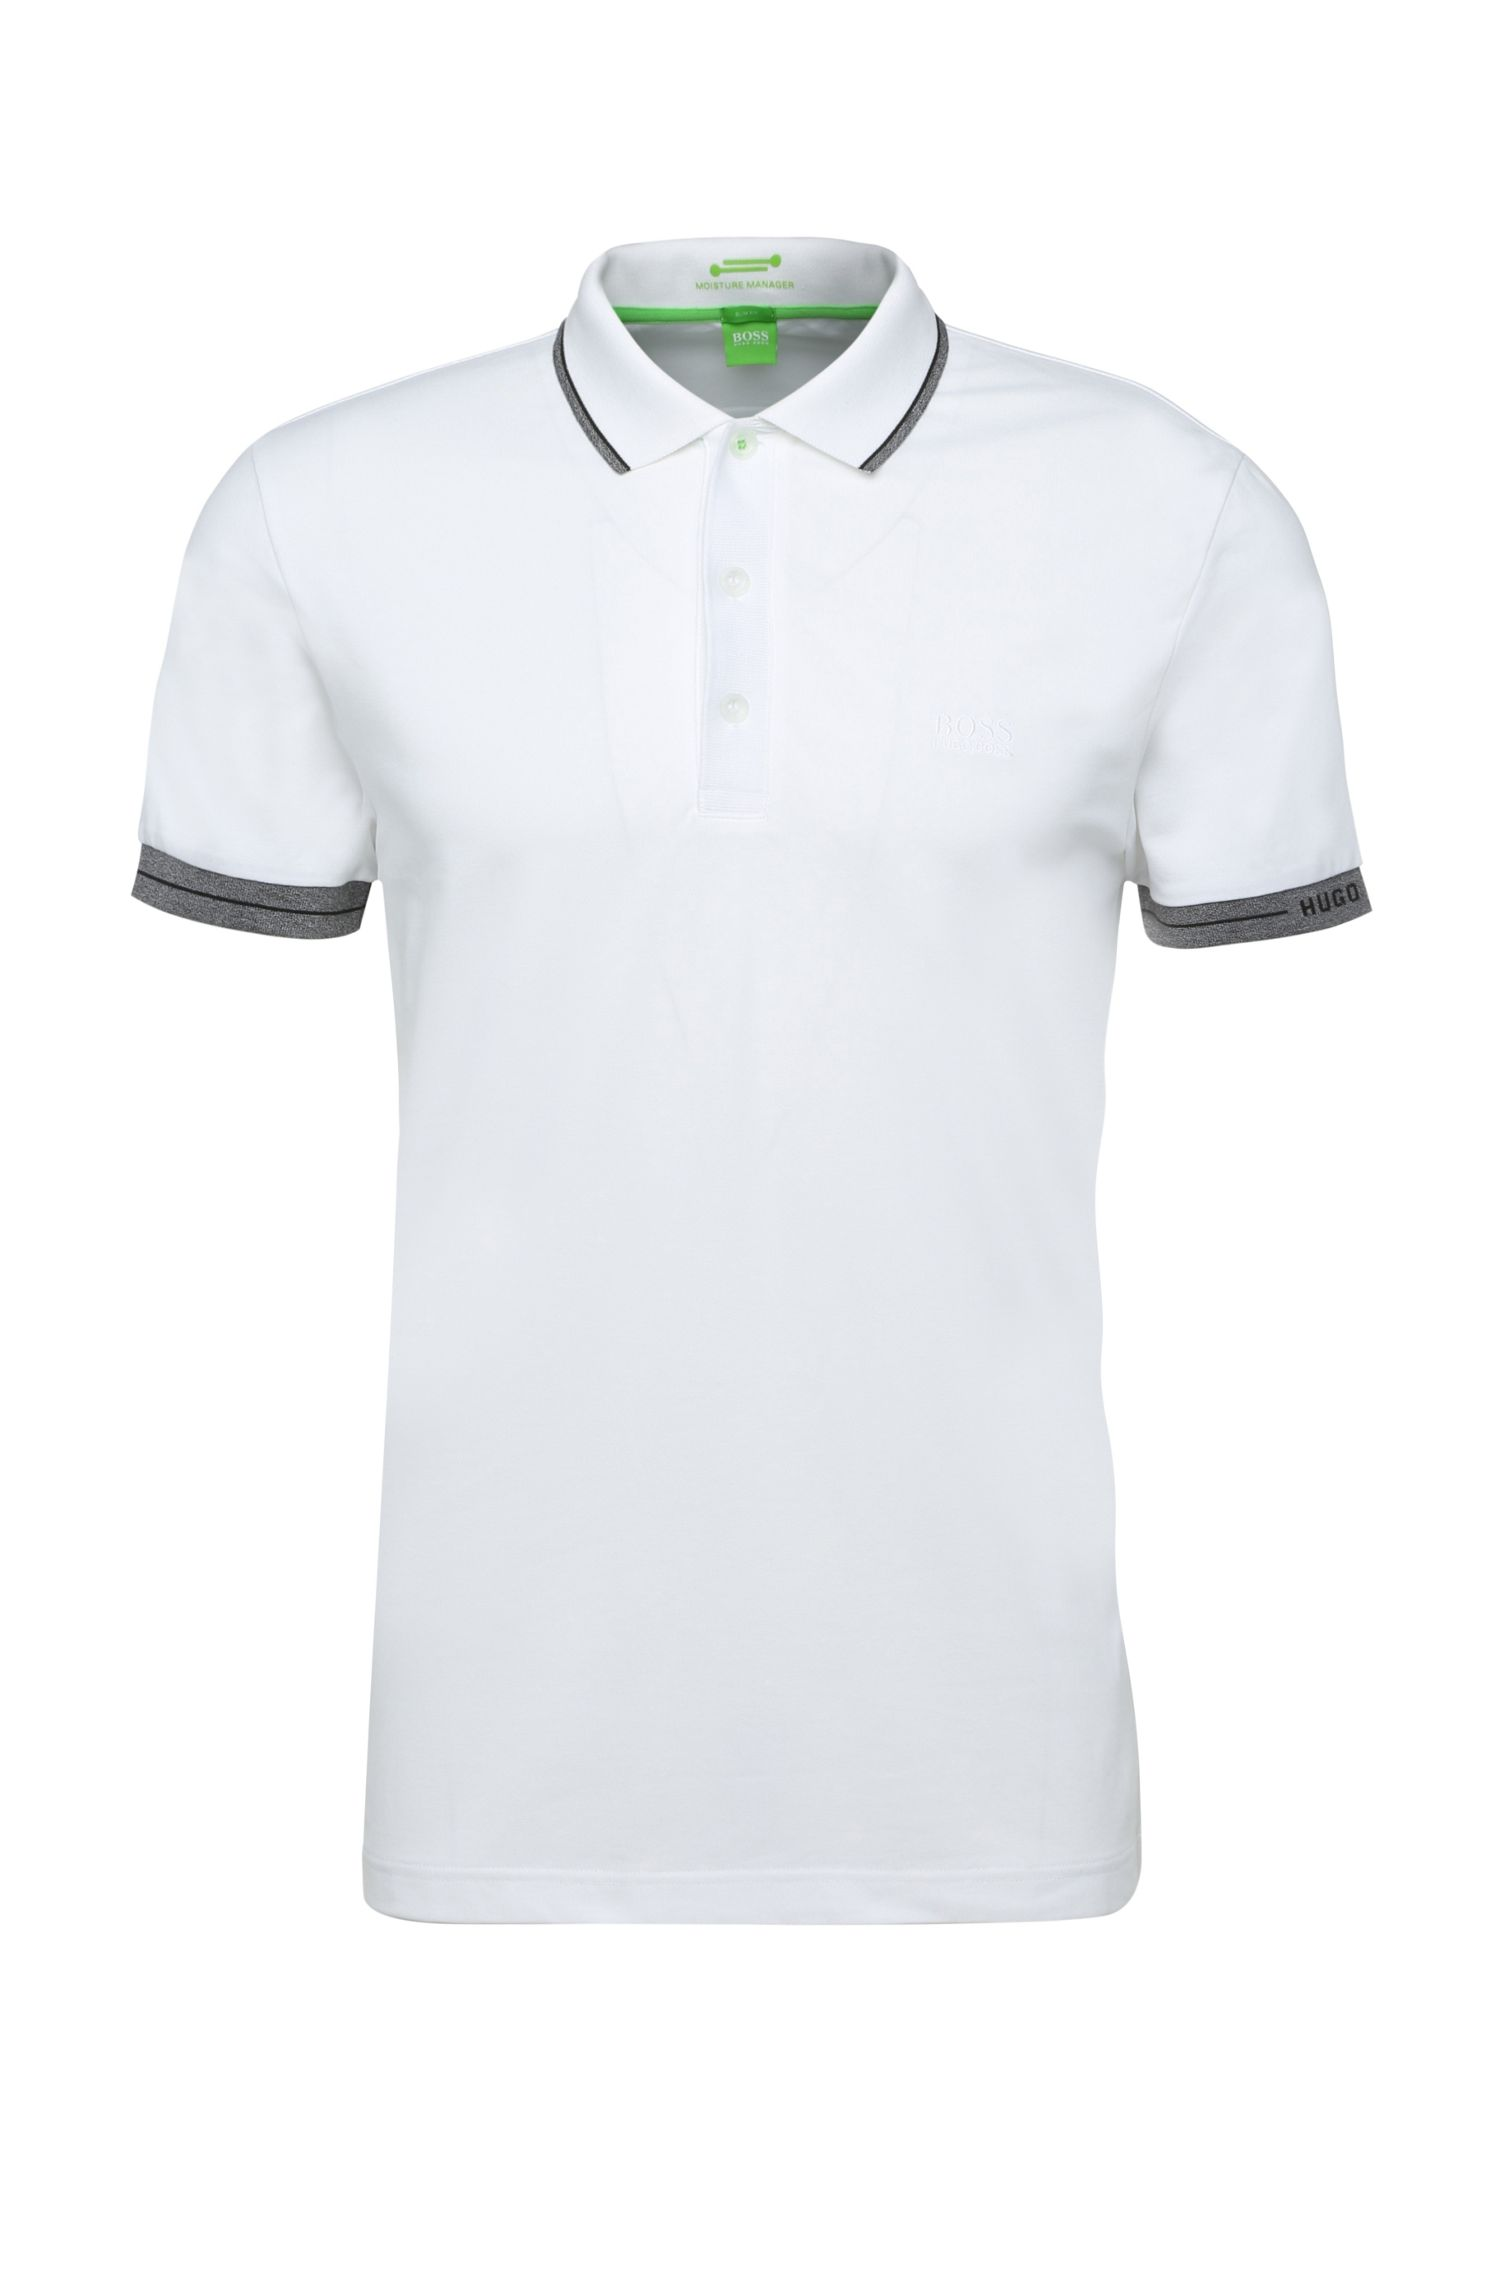 'Paule' | Slim Fit, Moisture Manager Cotton Polo Shirt